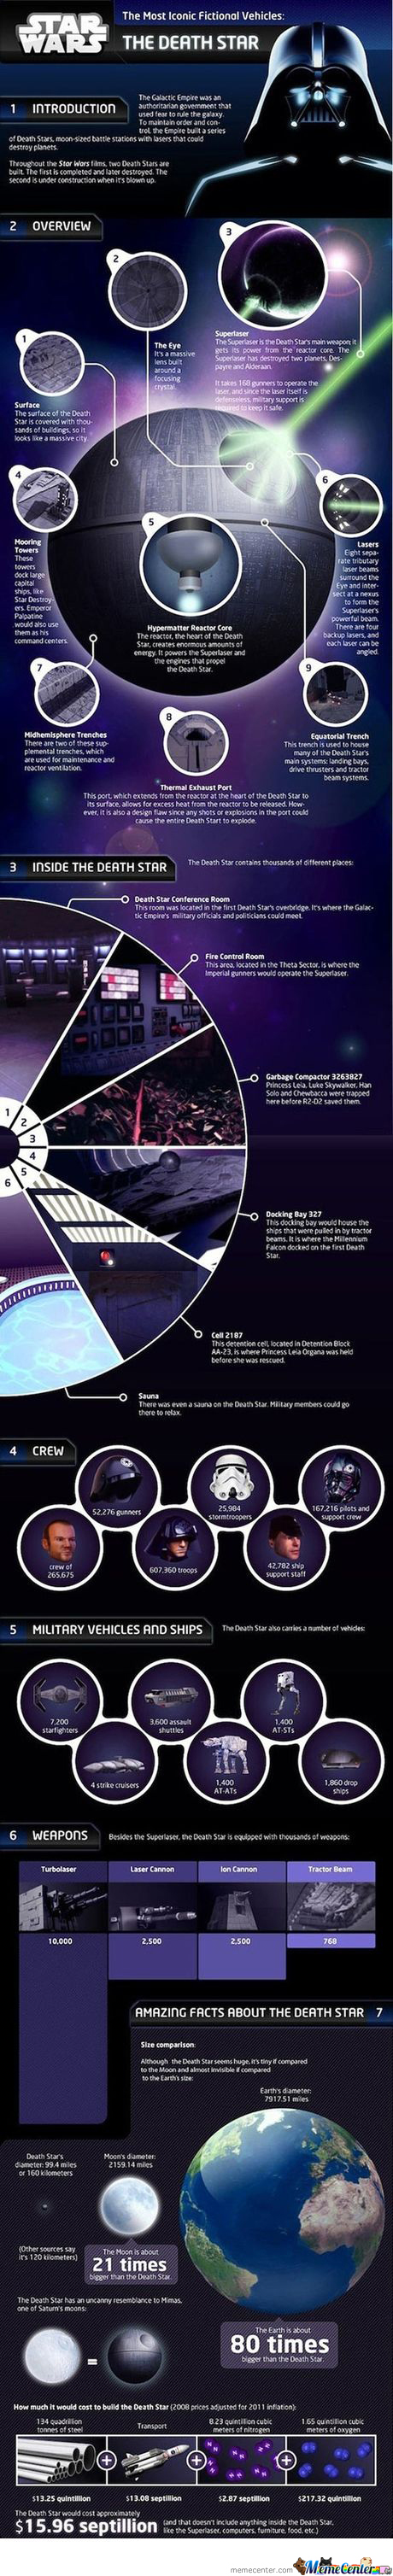 How Much Does It Cost To Build A Death Star???lol